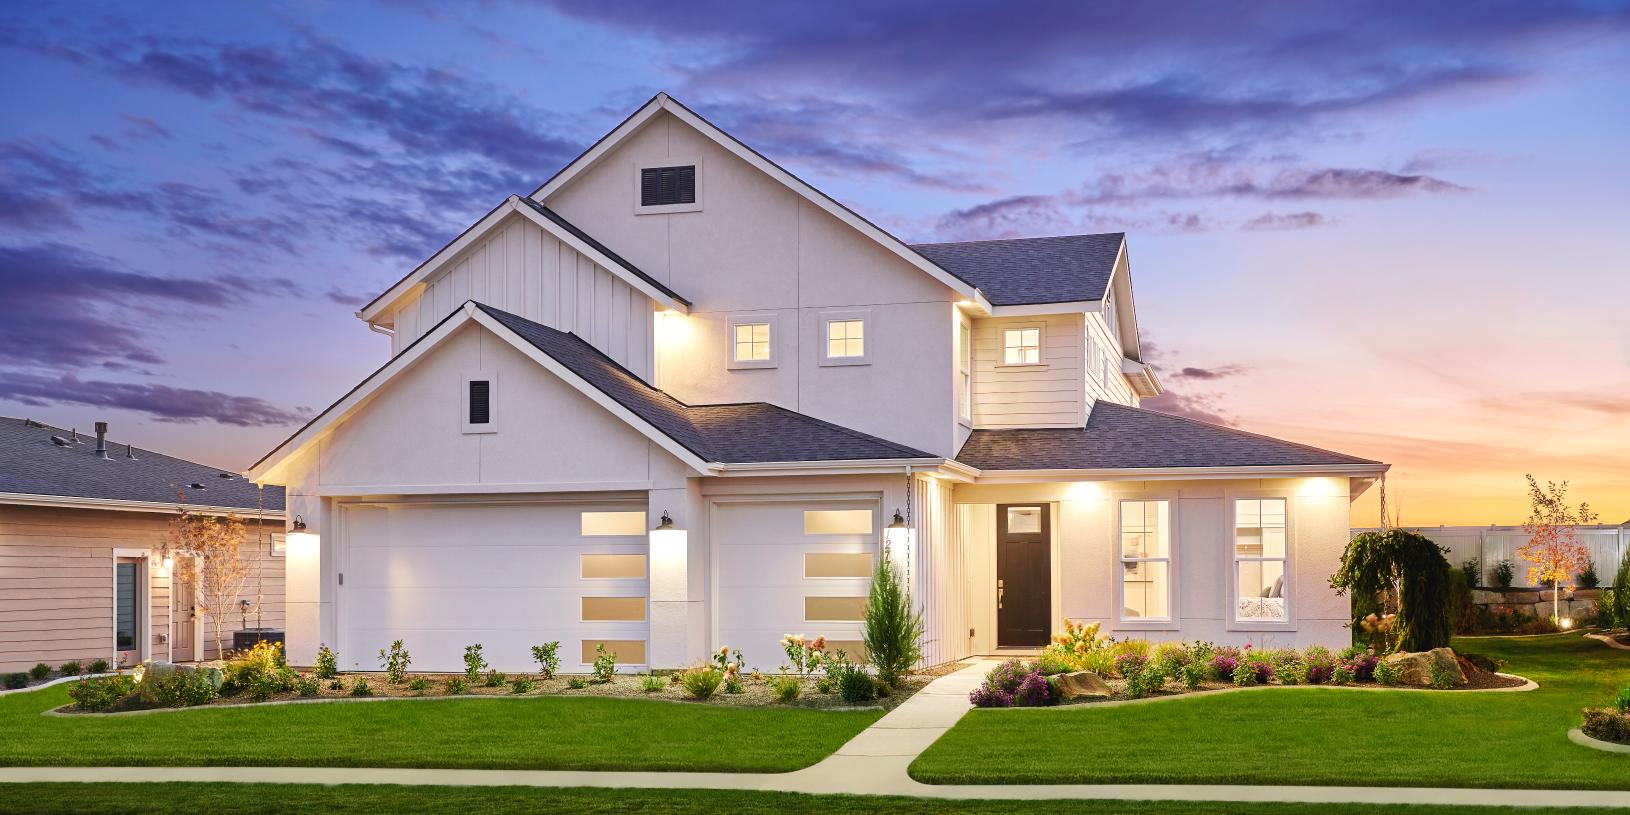 Discover exceptional curb appeal